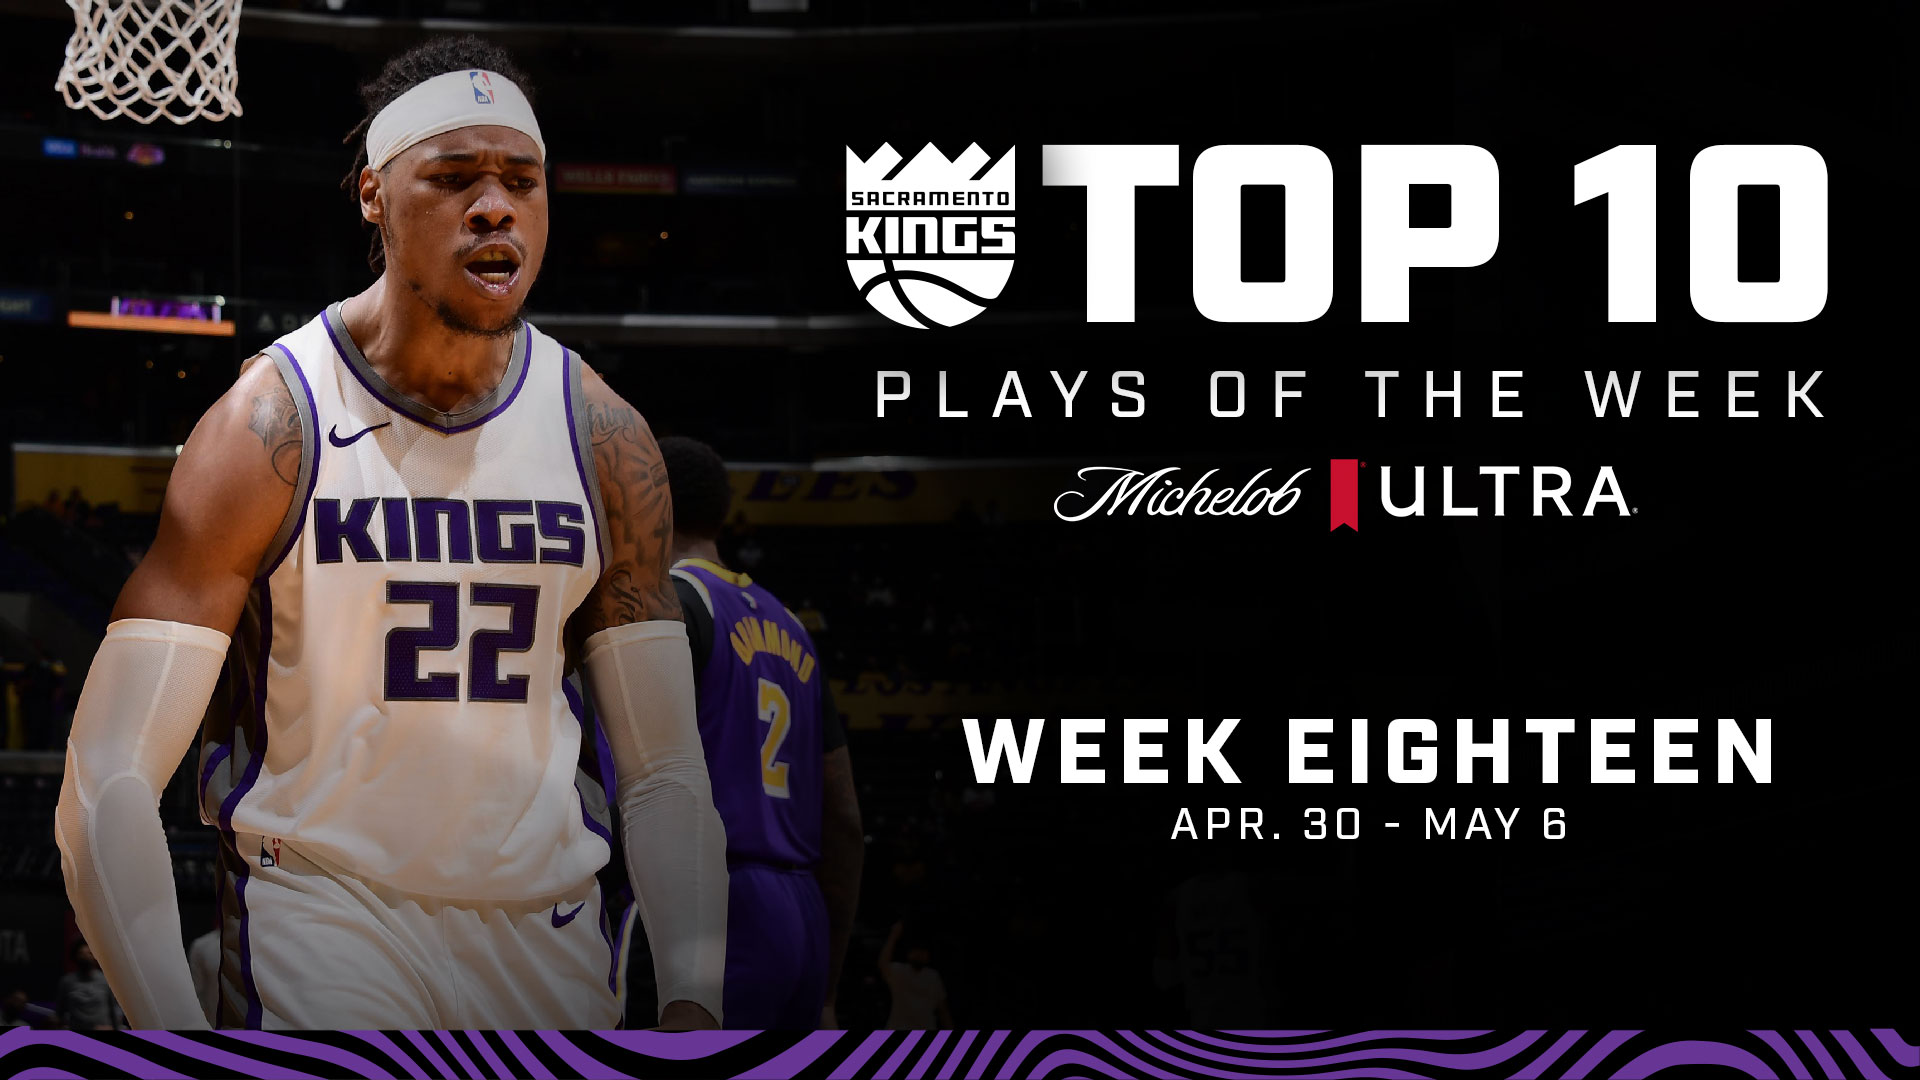 Kings Top 10 Plays of the Week | Week 18